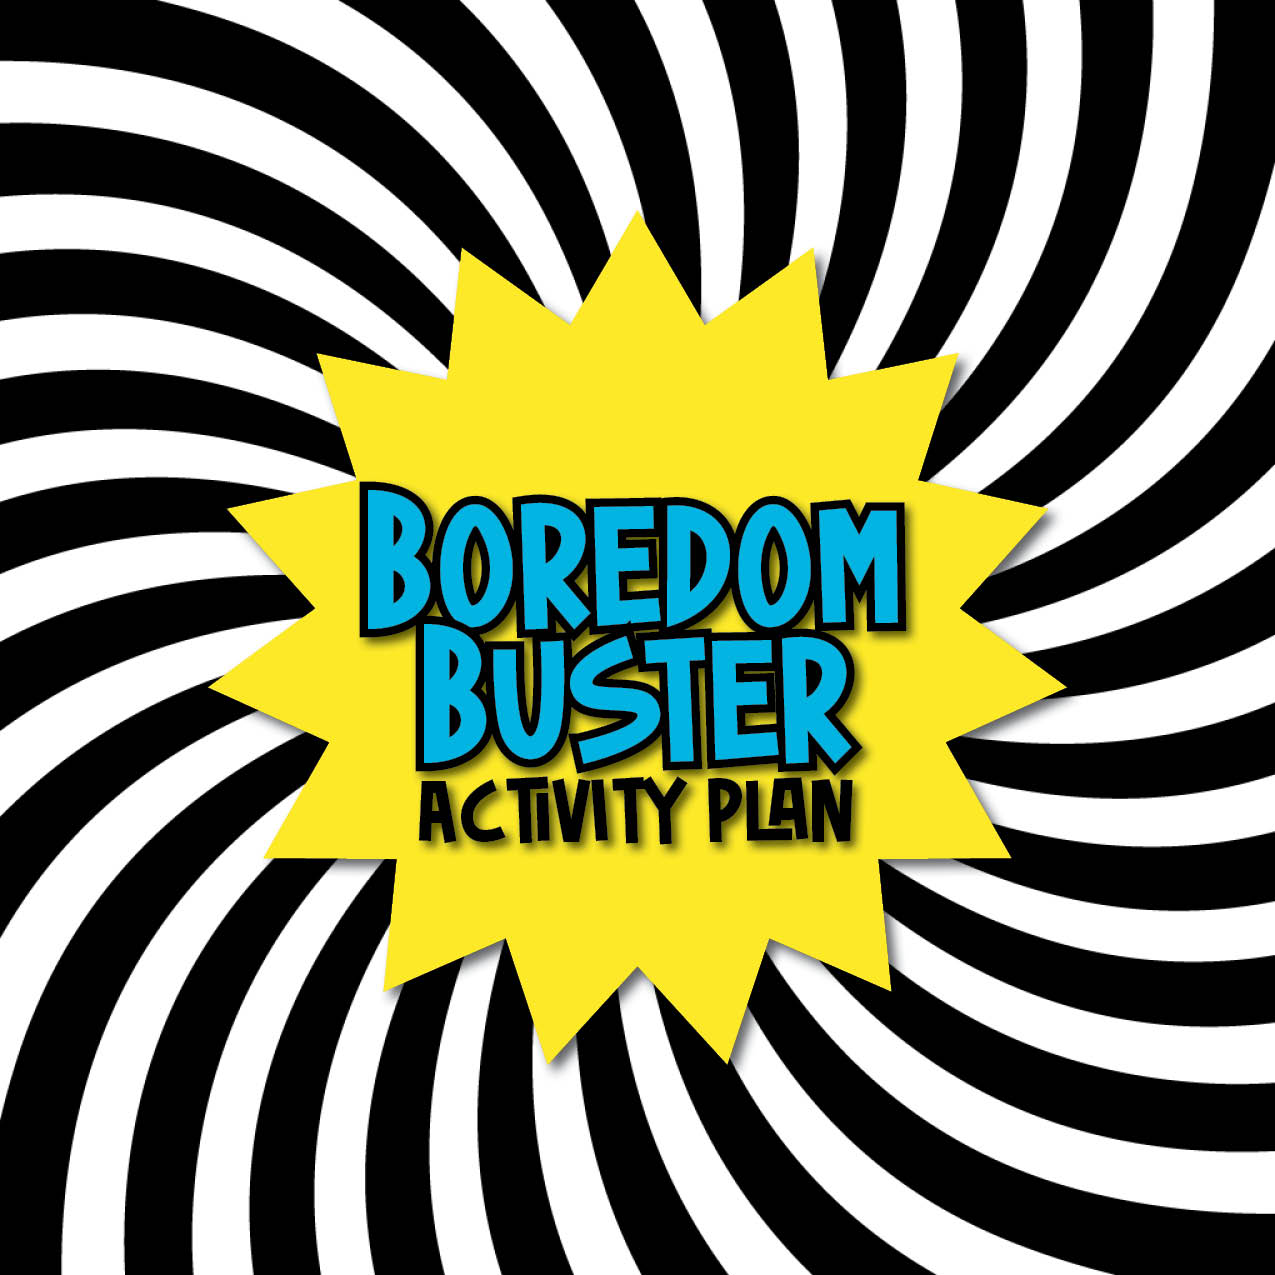 Boredom-Buster-Activity-Plan-Photos